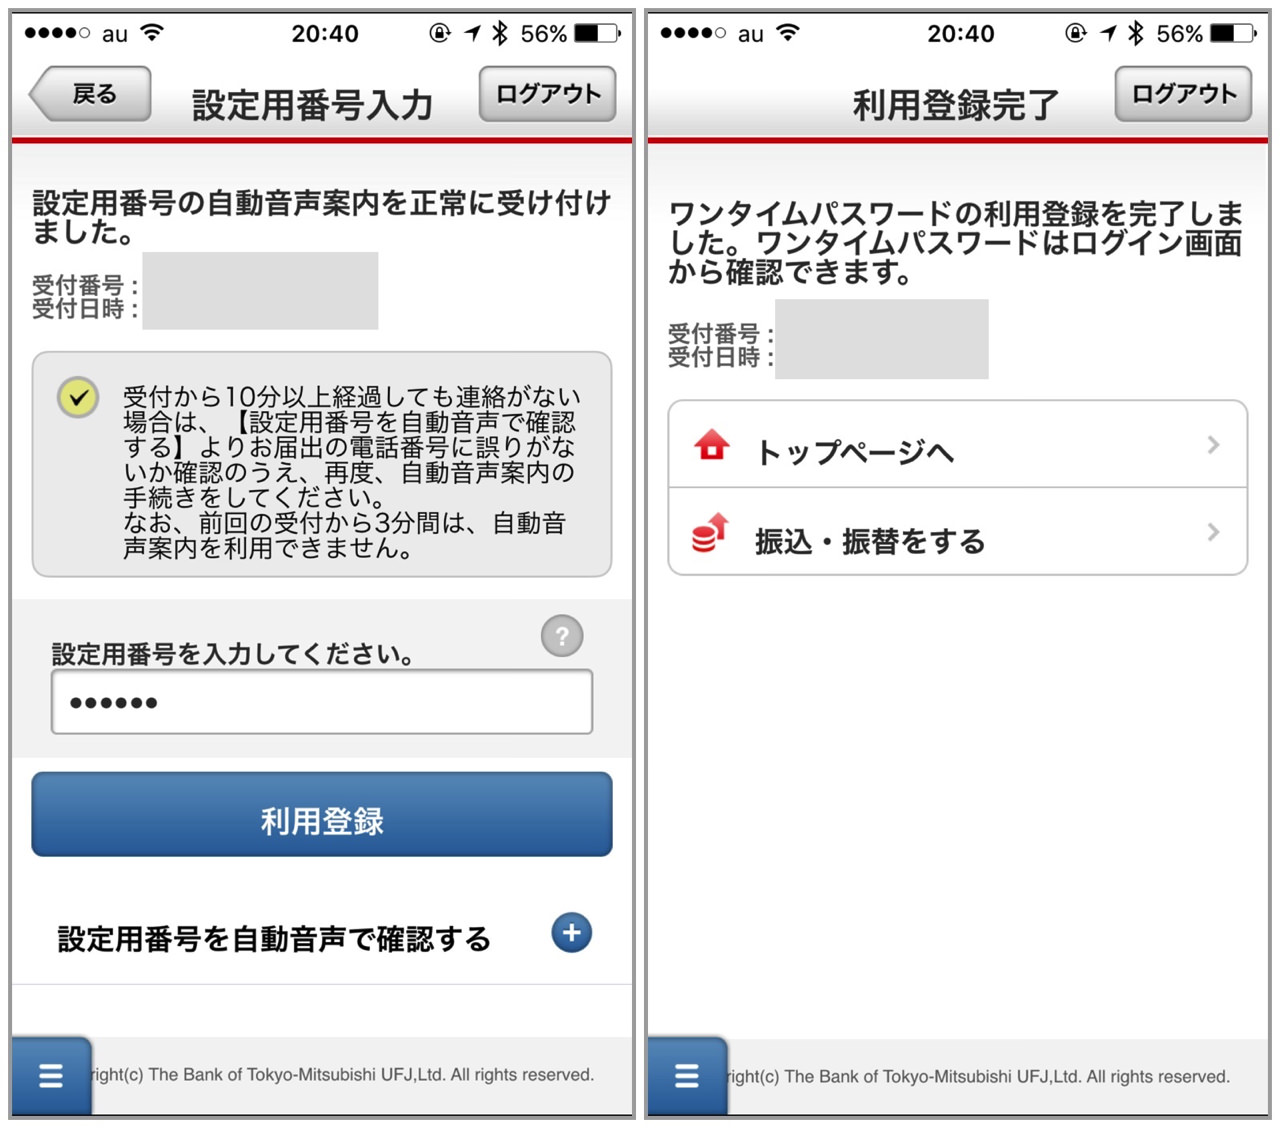 How to use registration of one time password iphone app bank of tokyo mitsubishi ufj6